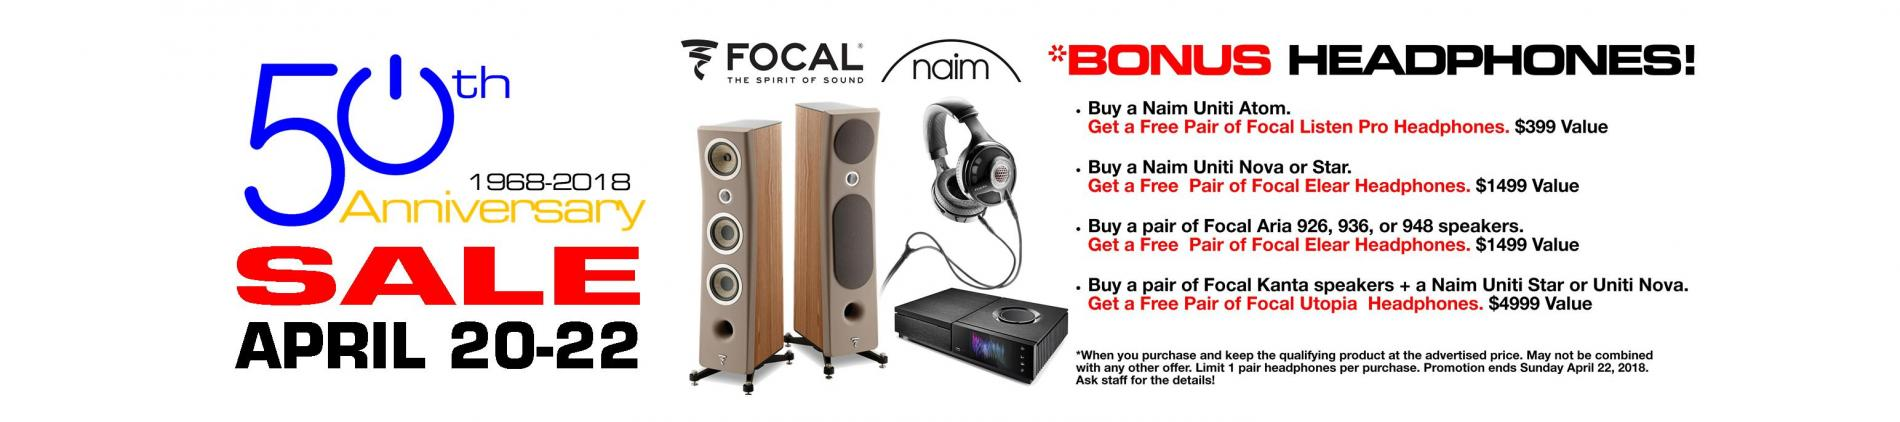 Atlas Audio Video Unlimited 50th Anniversary Bonus Focal Headphones with select Naim Uniti and Focal Aria purchase